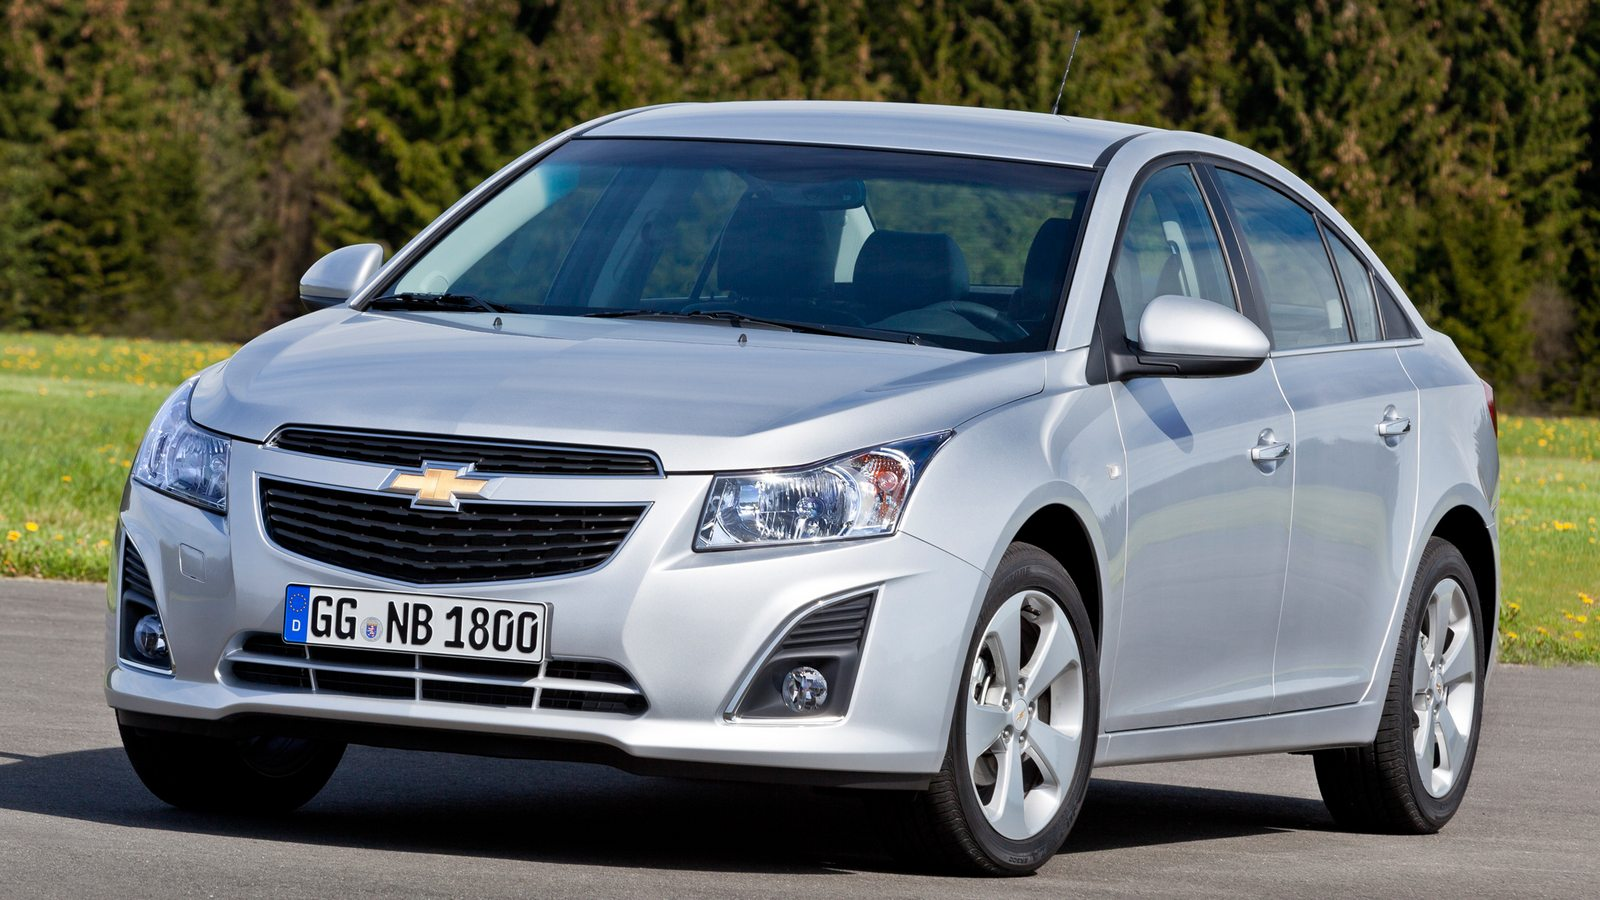 Chevrolet Cruze sedan and hatchback (MY 2013)